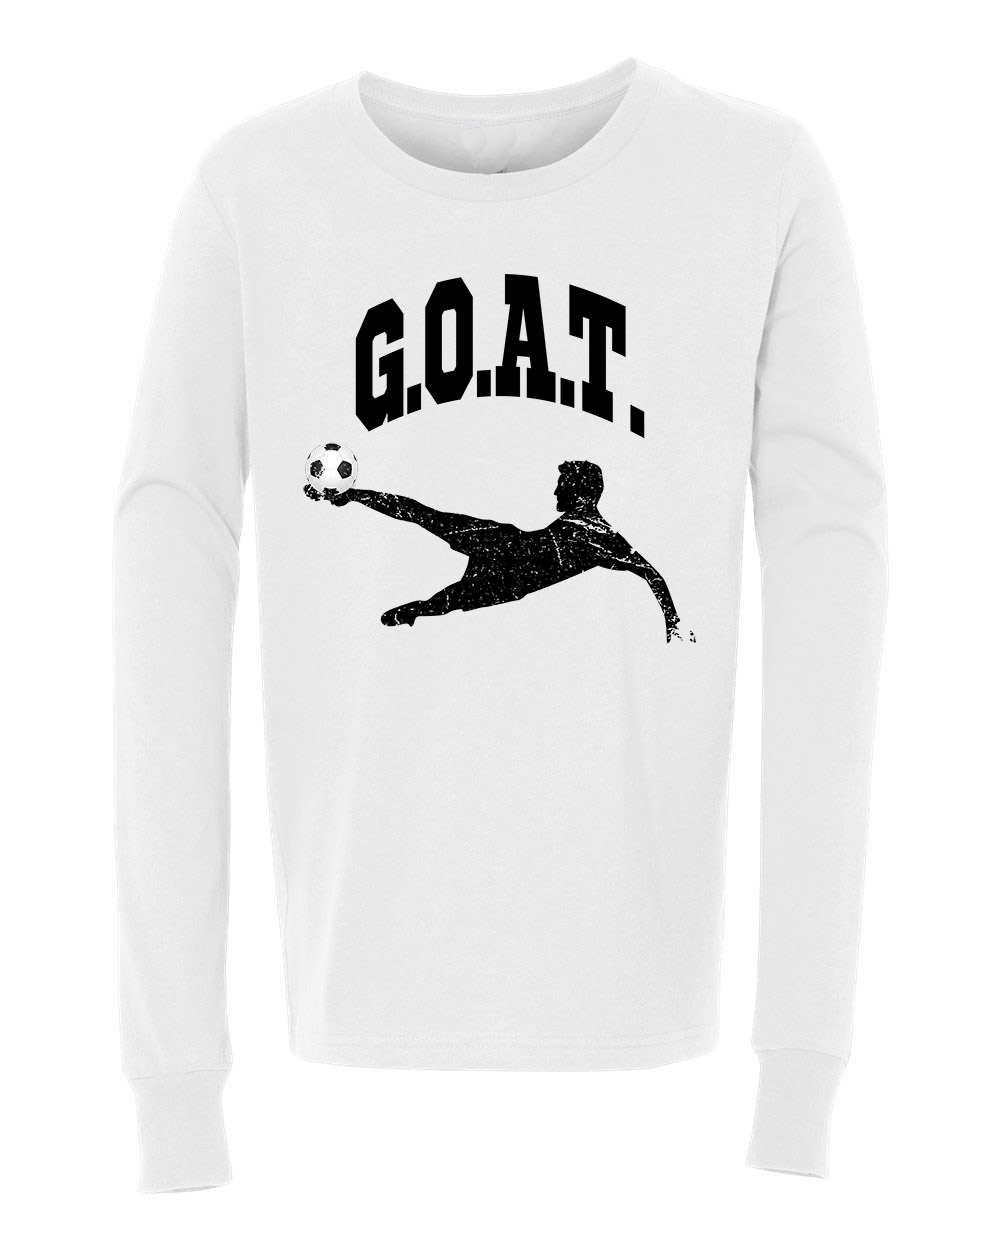 Greatest Of All Times G.O.A.T Soccer Youth Long Sleeve T-Shirt